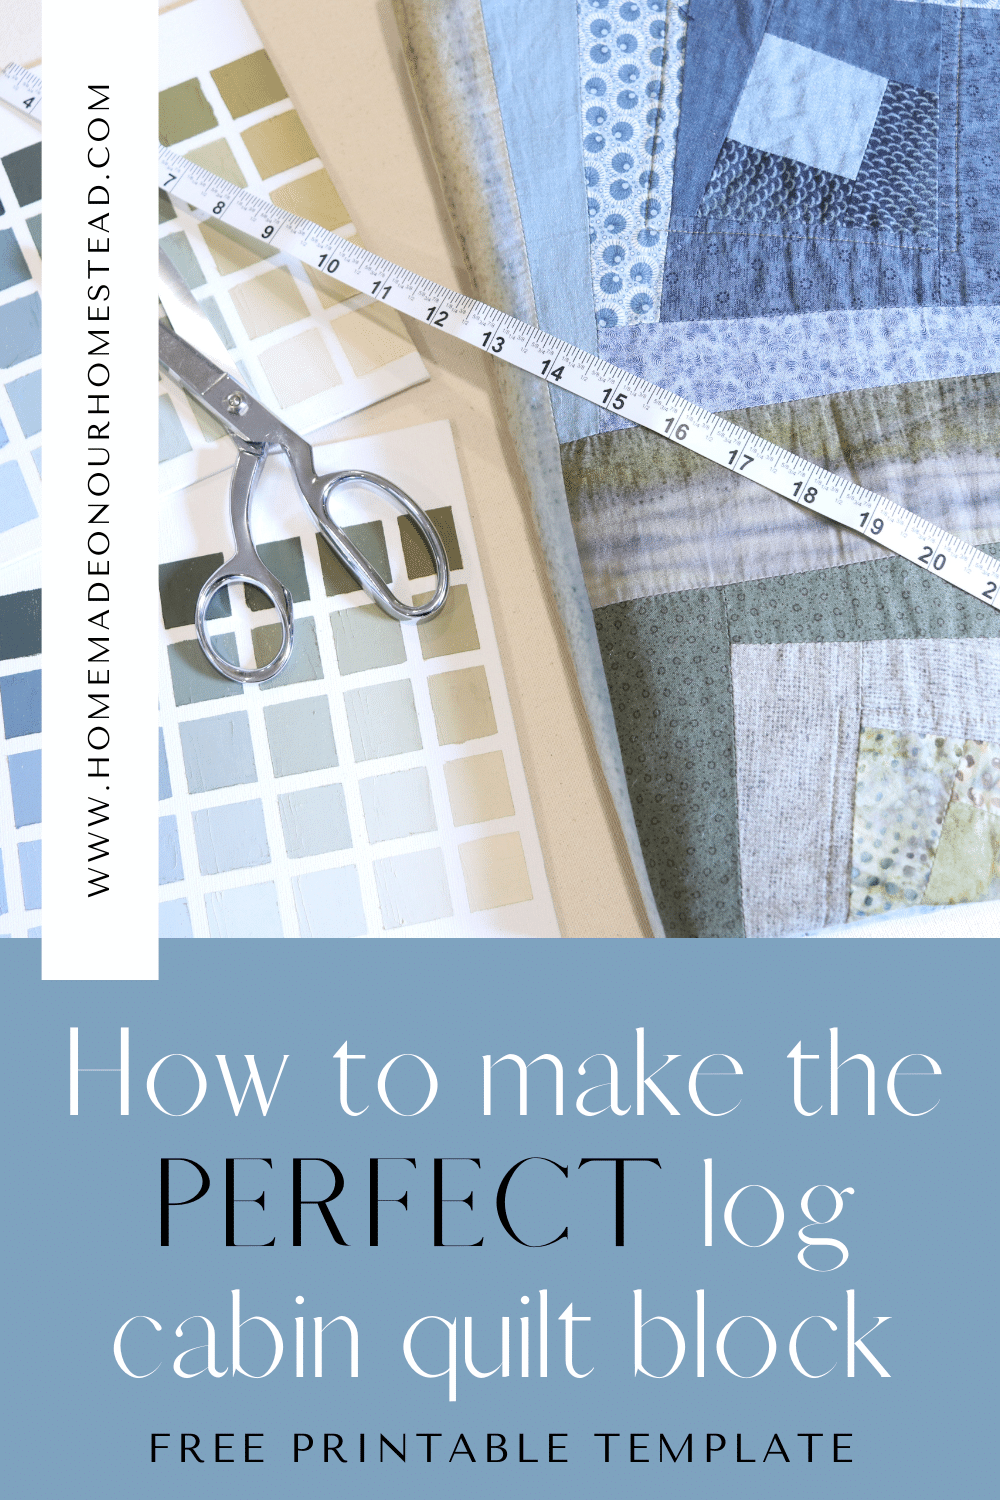 pinterest image graphic for how to make a perfect log cabin quilt block